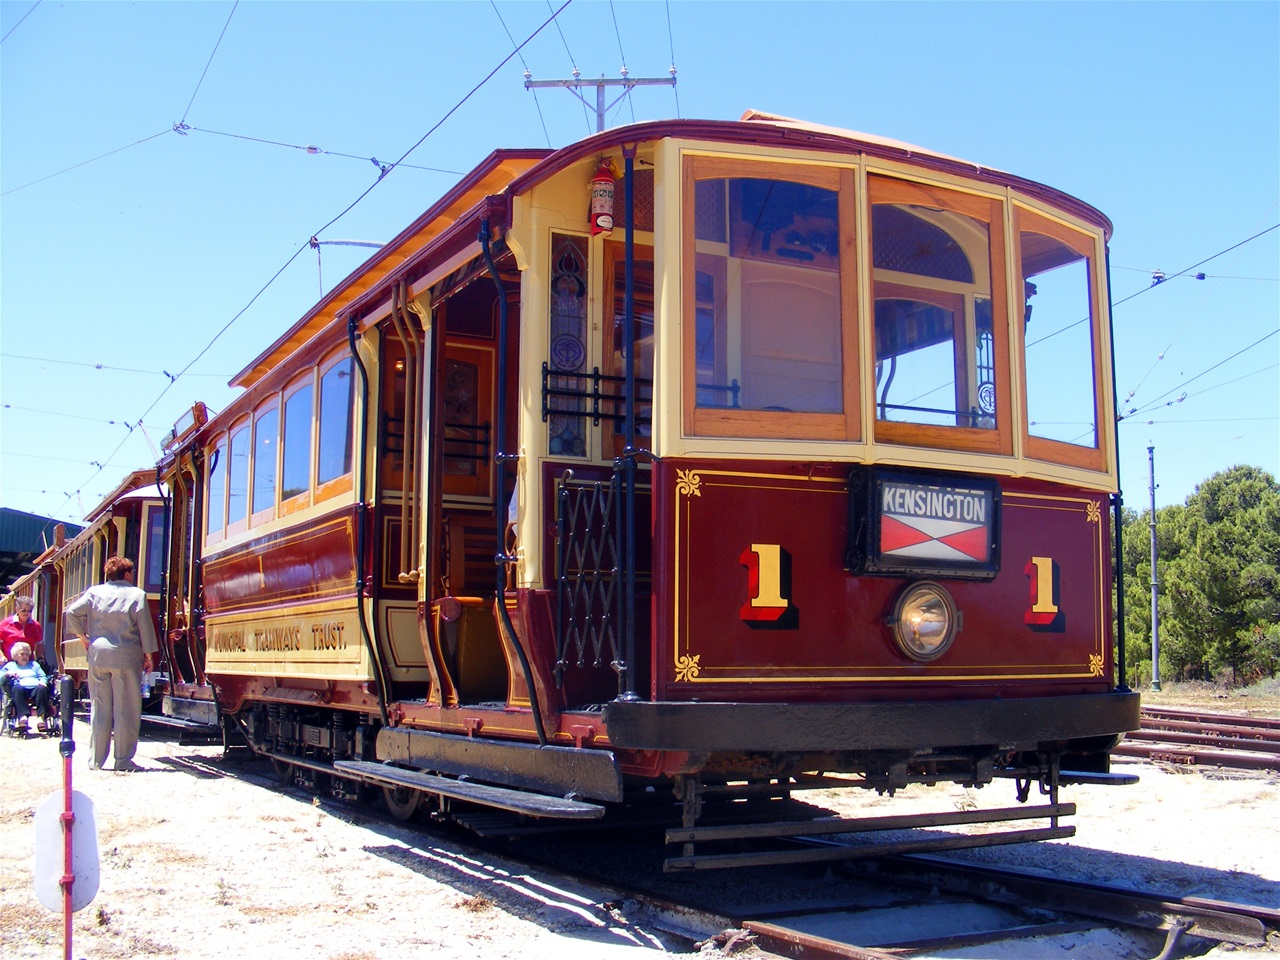 🔶 A-Type Tram No. 1 - STATIC DISPLAY USED FOR SPECIAL EVENTS ONLY